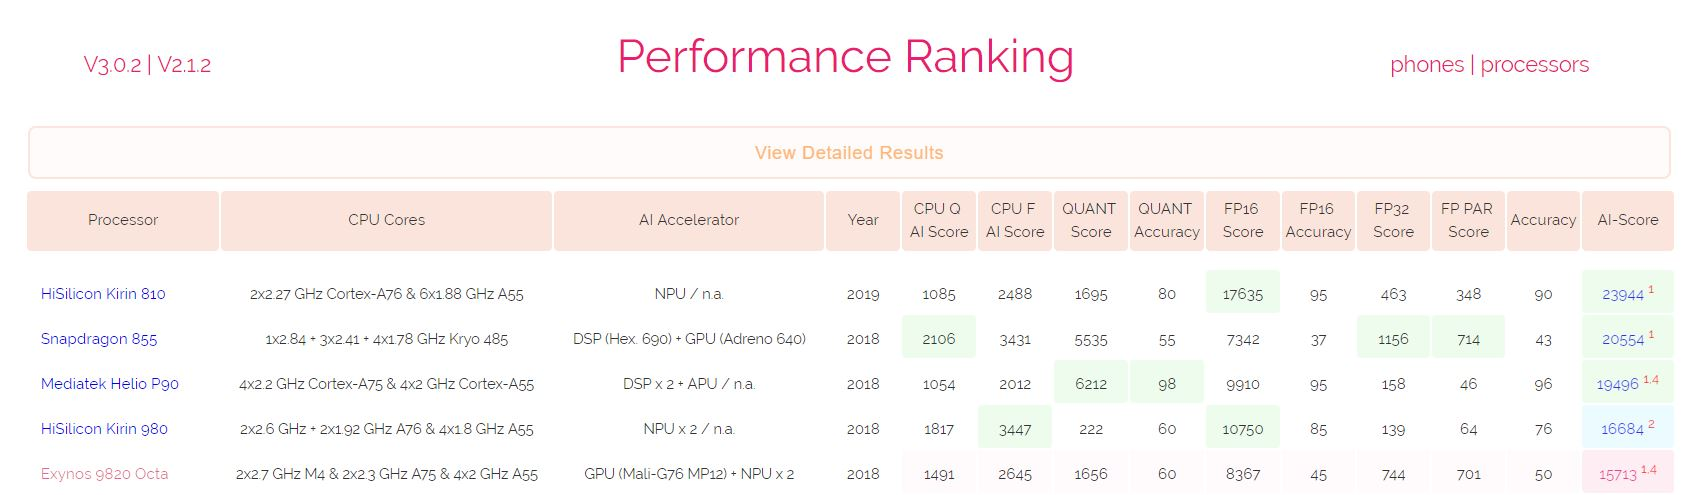 chipsets 810 980 855 in AI test